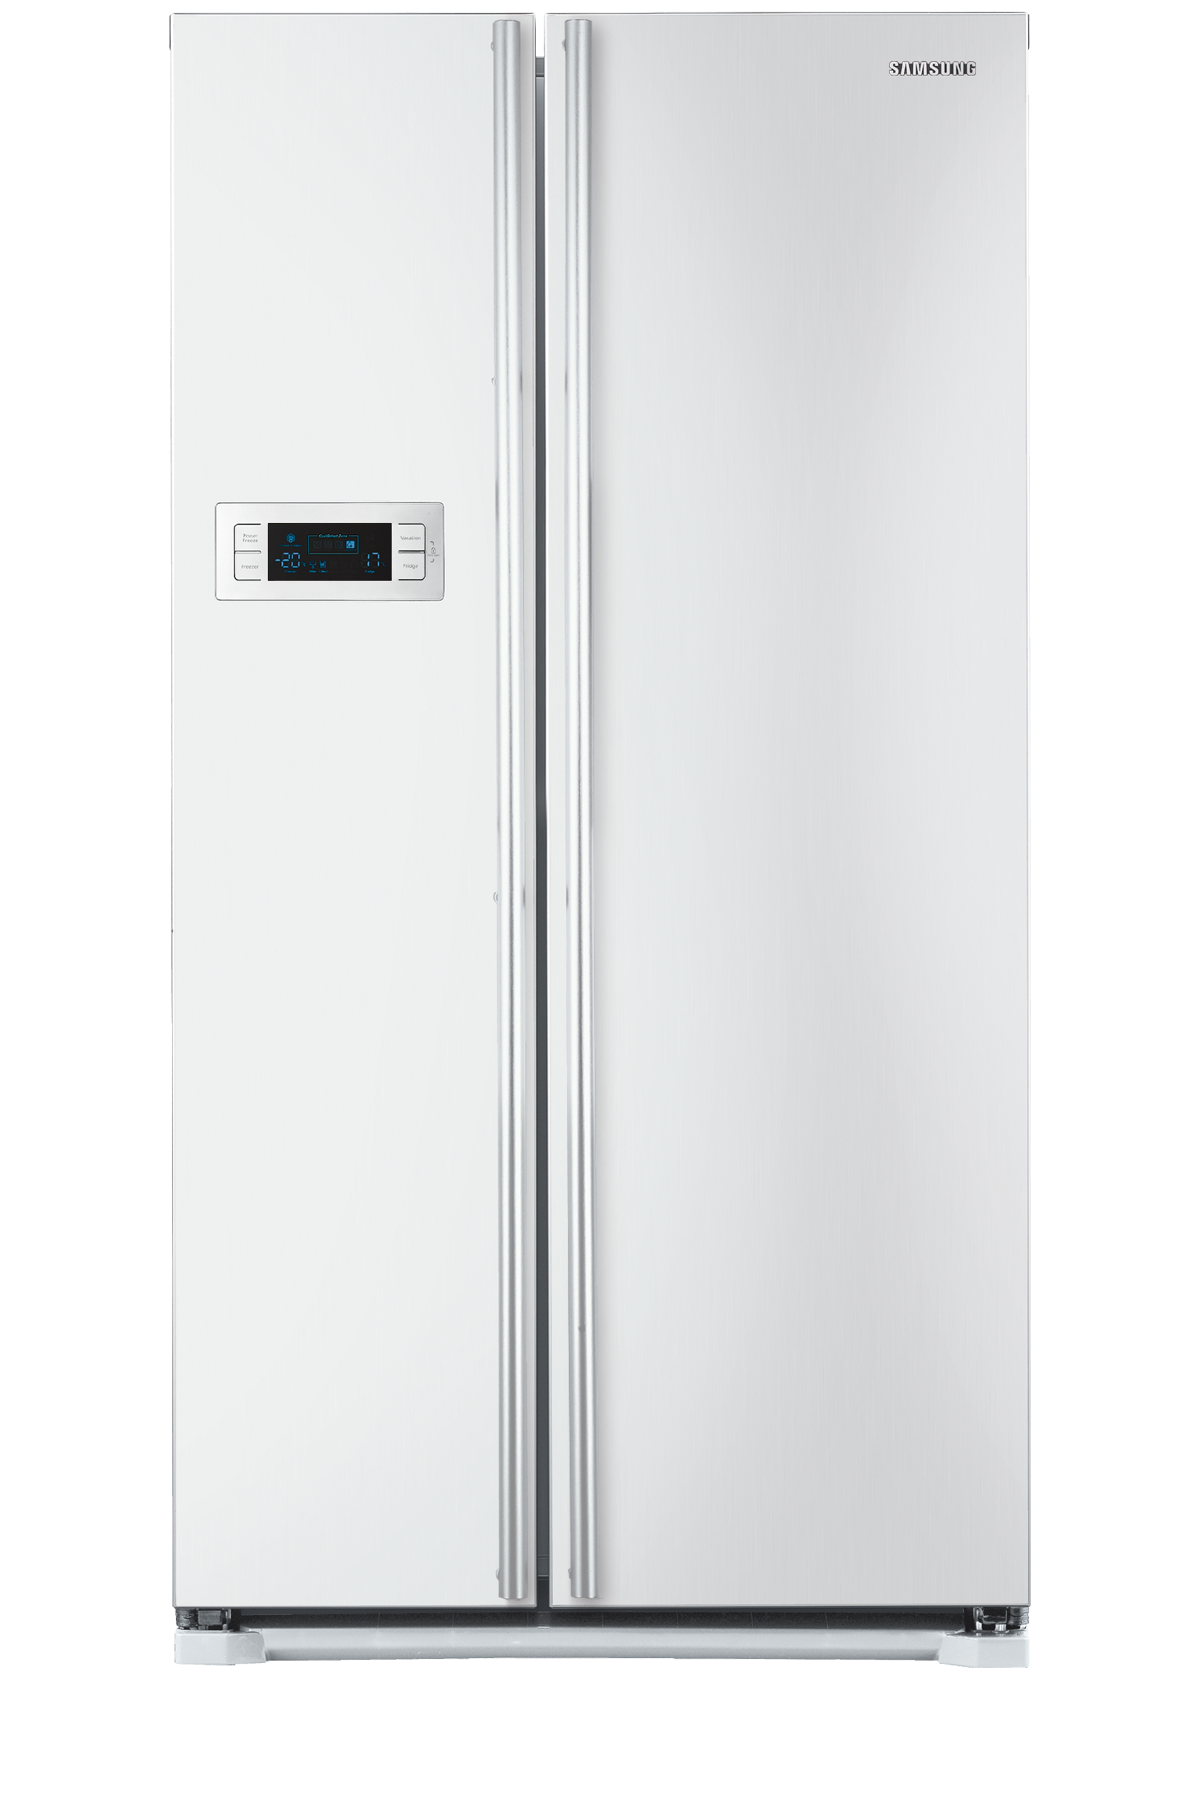 HM10 SBS with Twin Cooling, 551 L, White